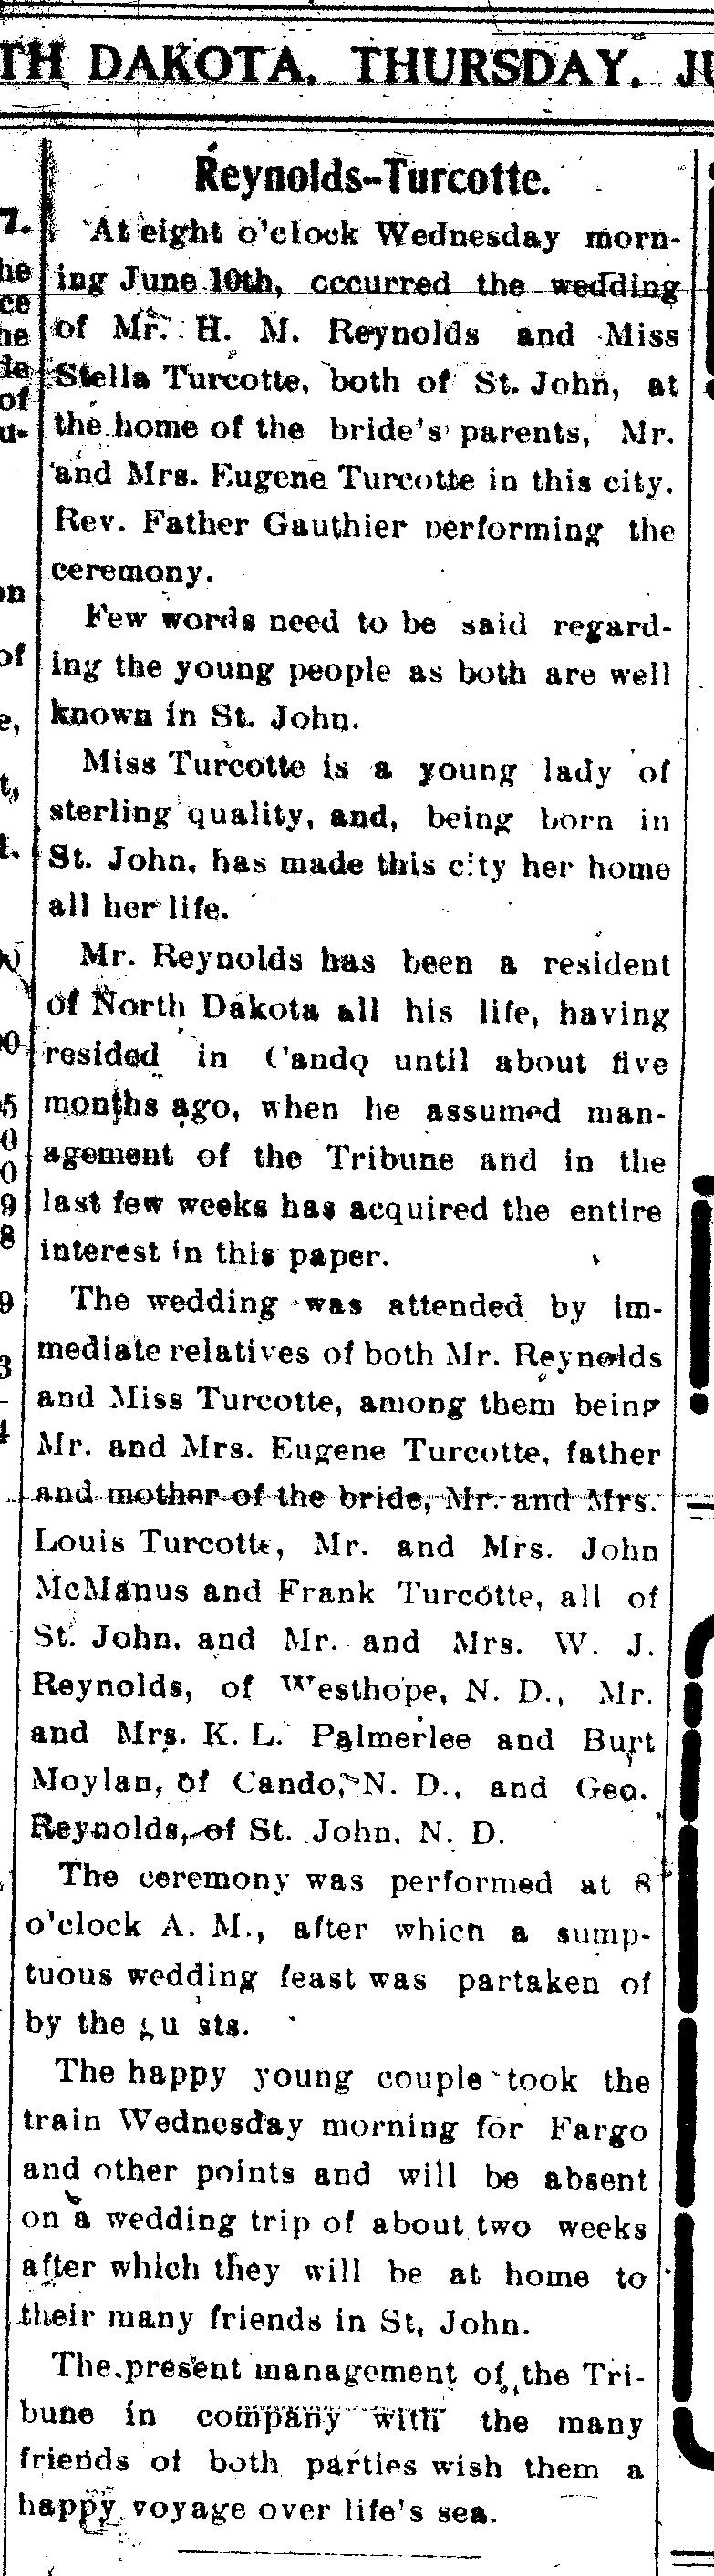 St john Herald Marriage of Stella Turcotte to Hugh Reynolds